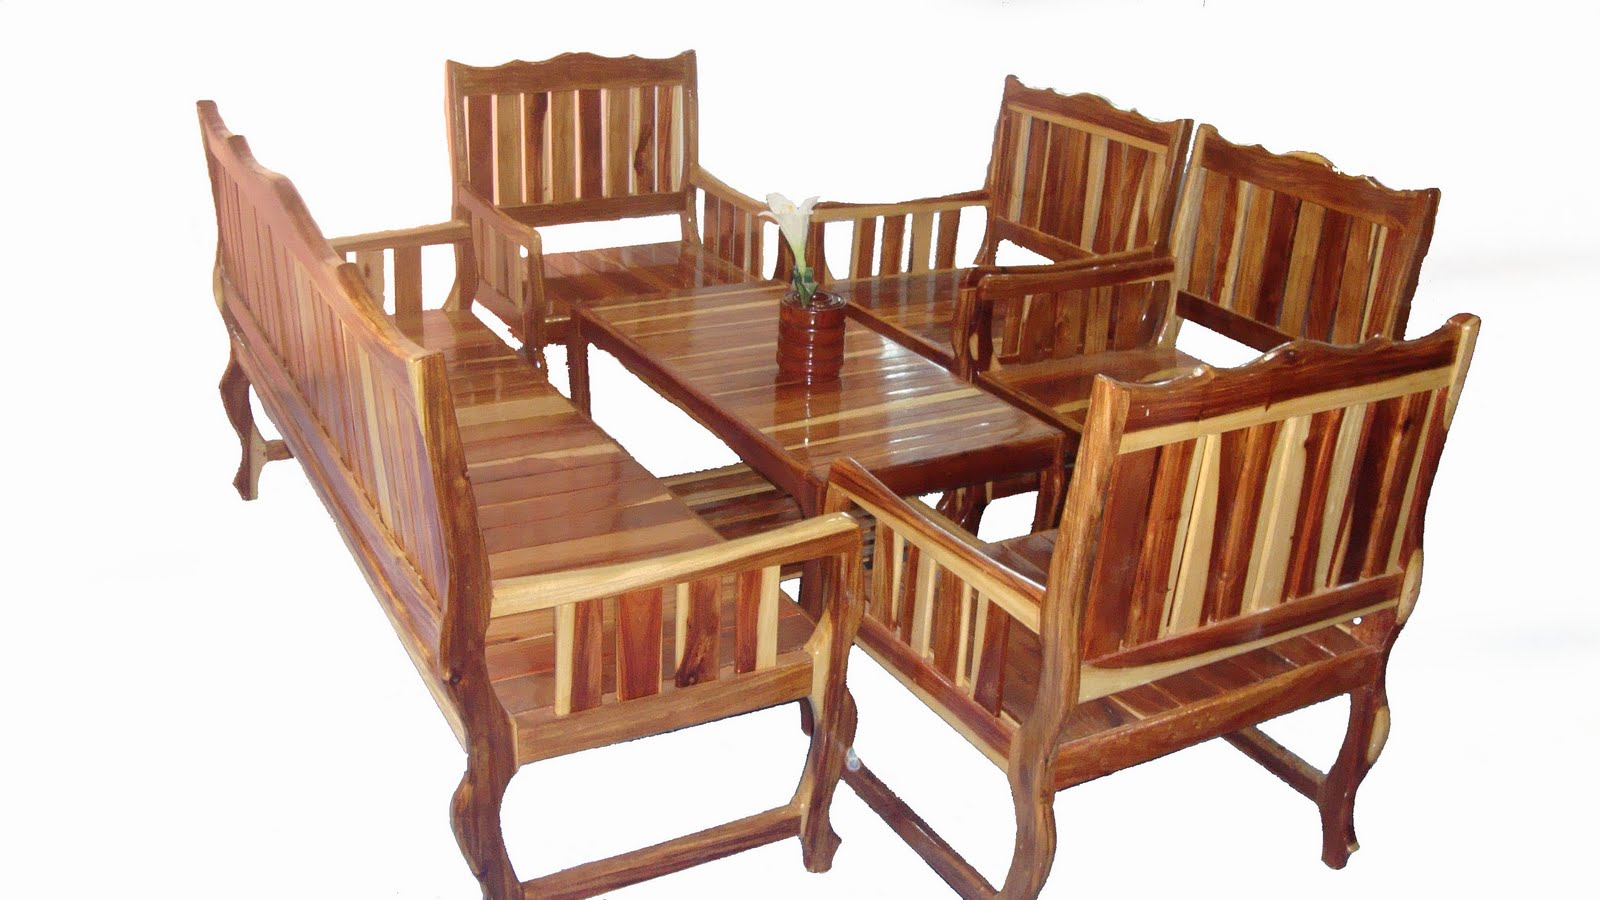 For All Types Furniture Making Plz Contact on 09558424748 - Only Available  for Gujarat